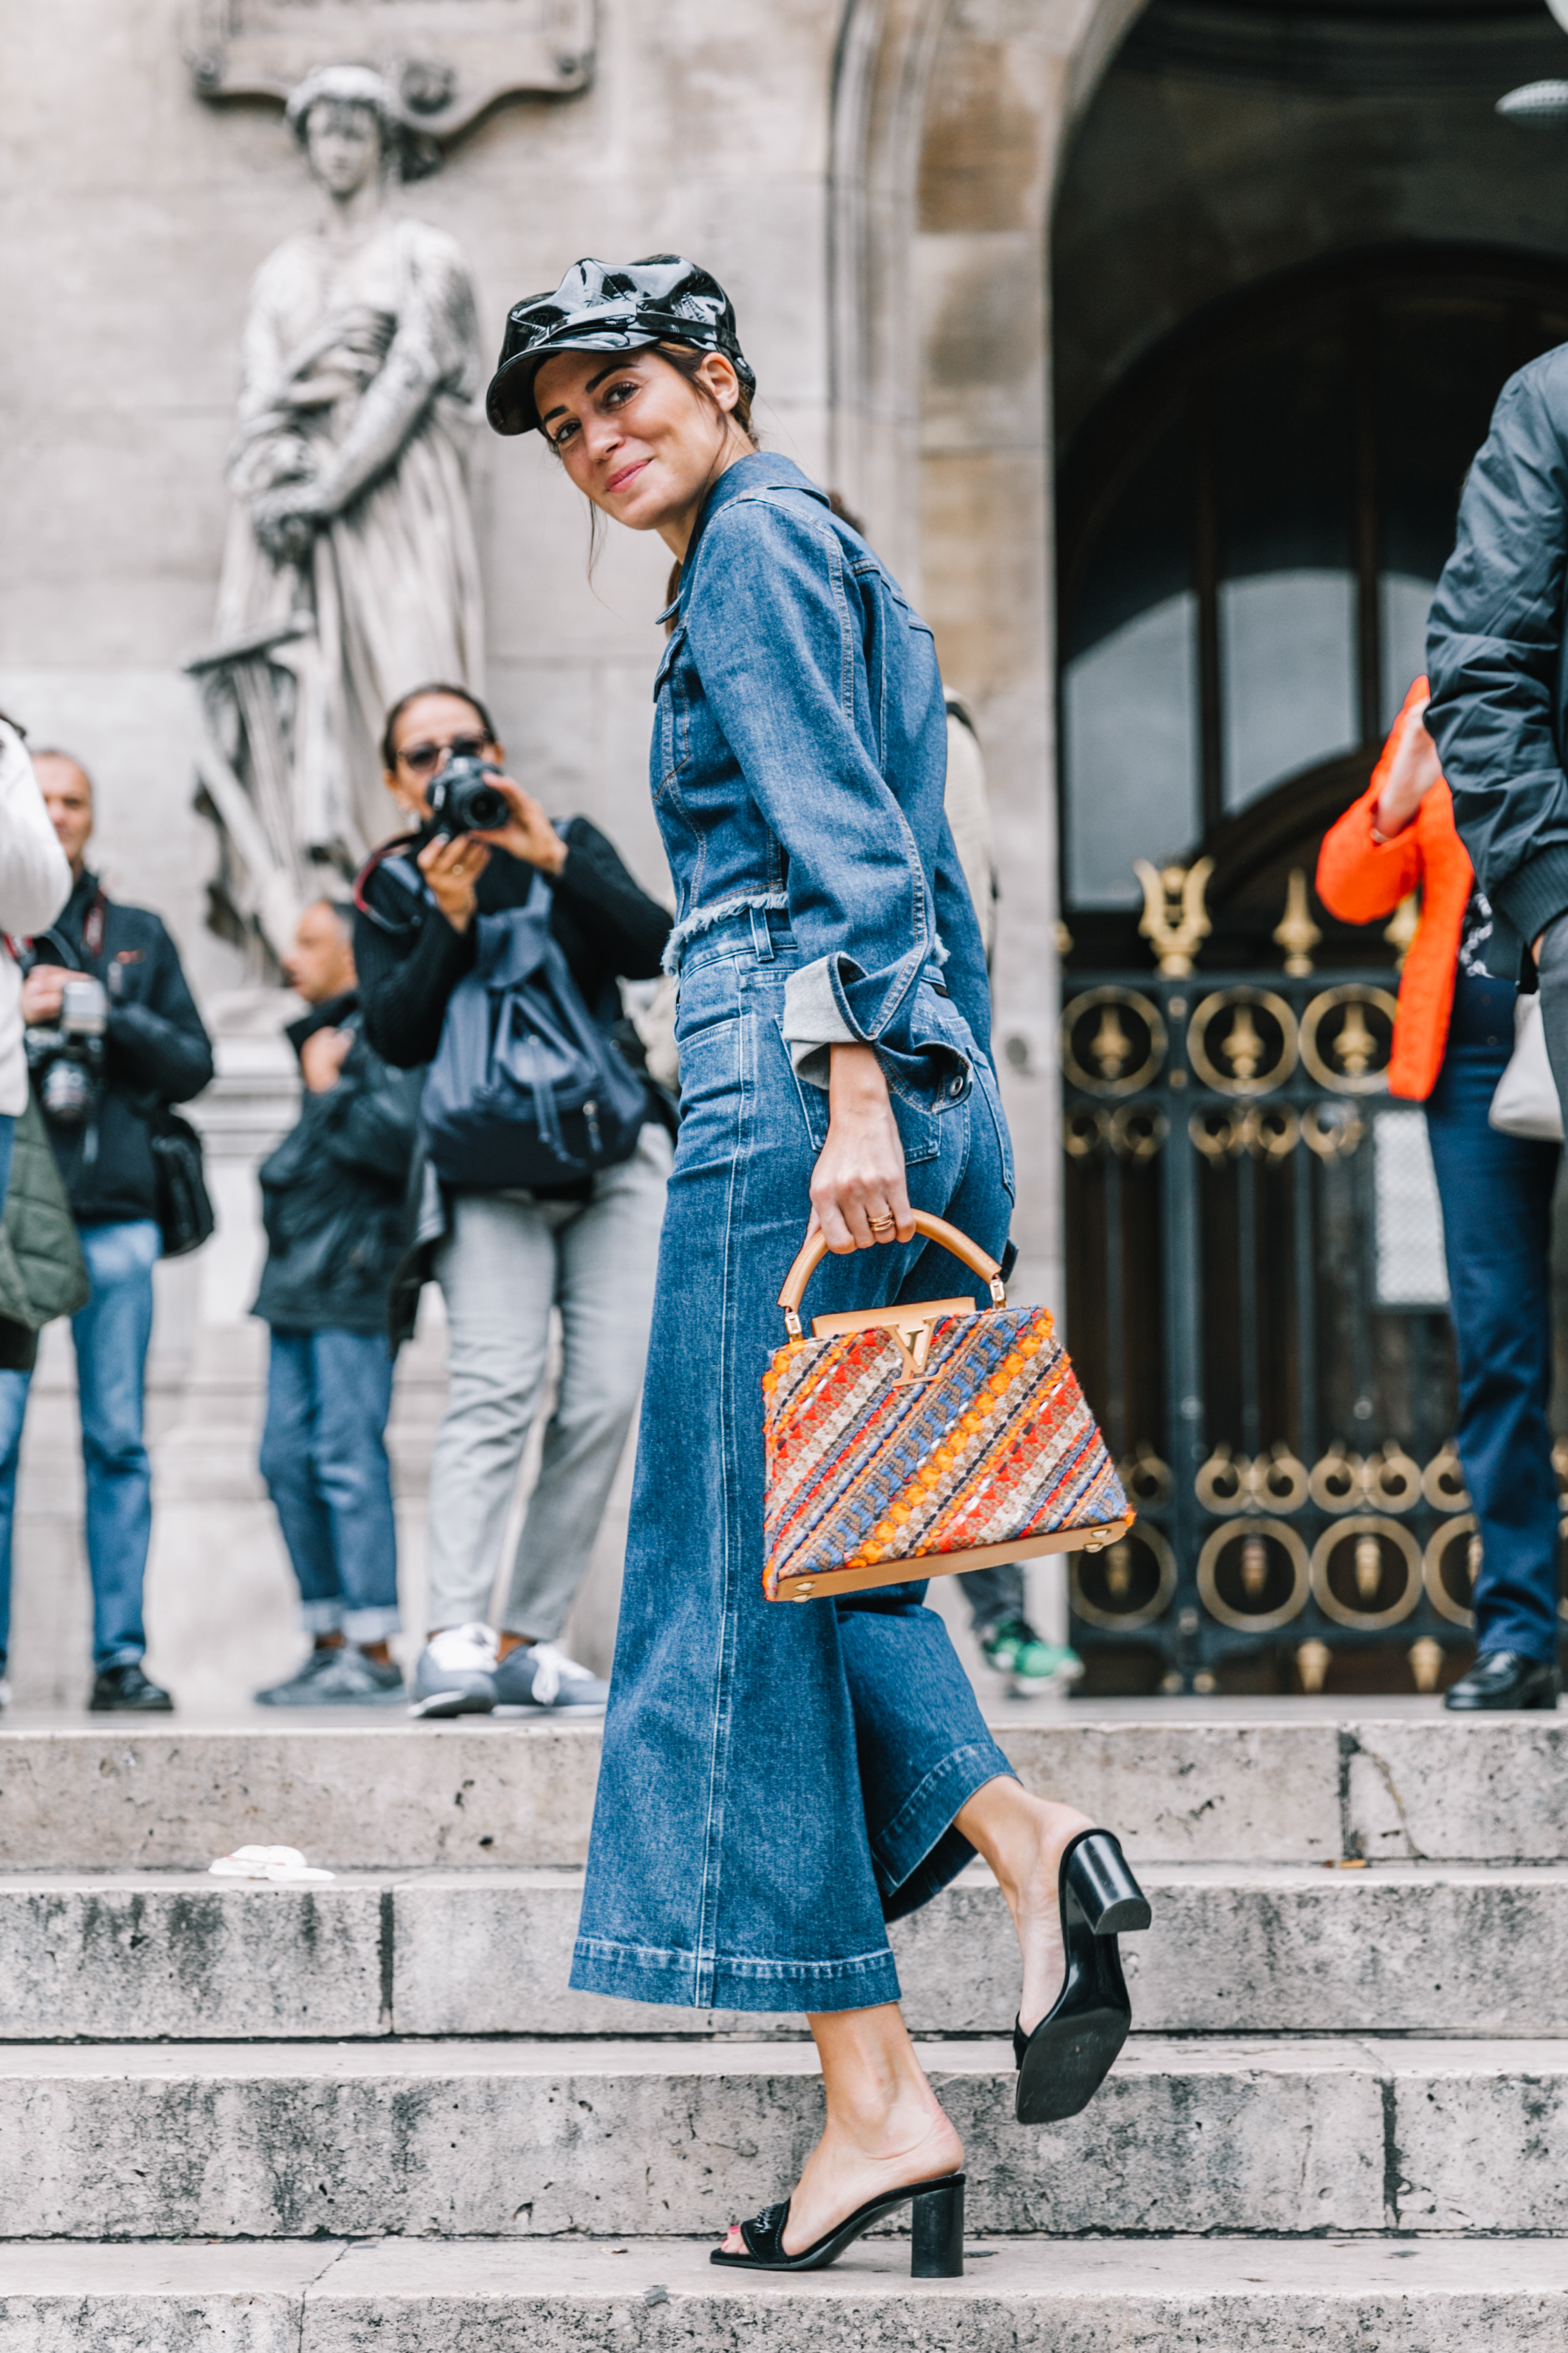 Street Style At London Fashion Week With Anouk: Paris SS18 Street Style V